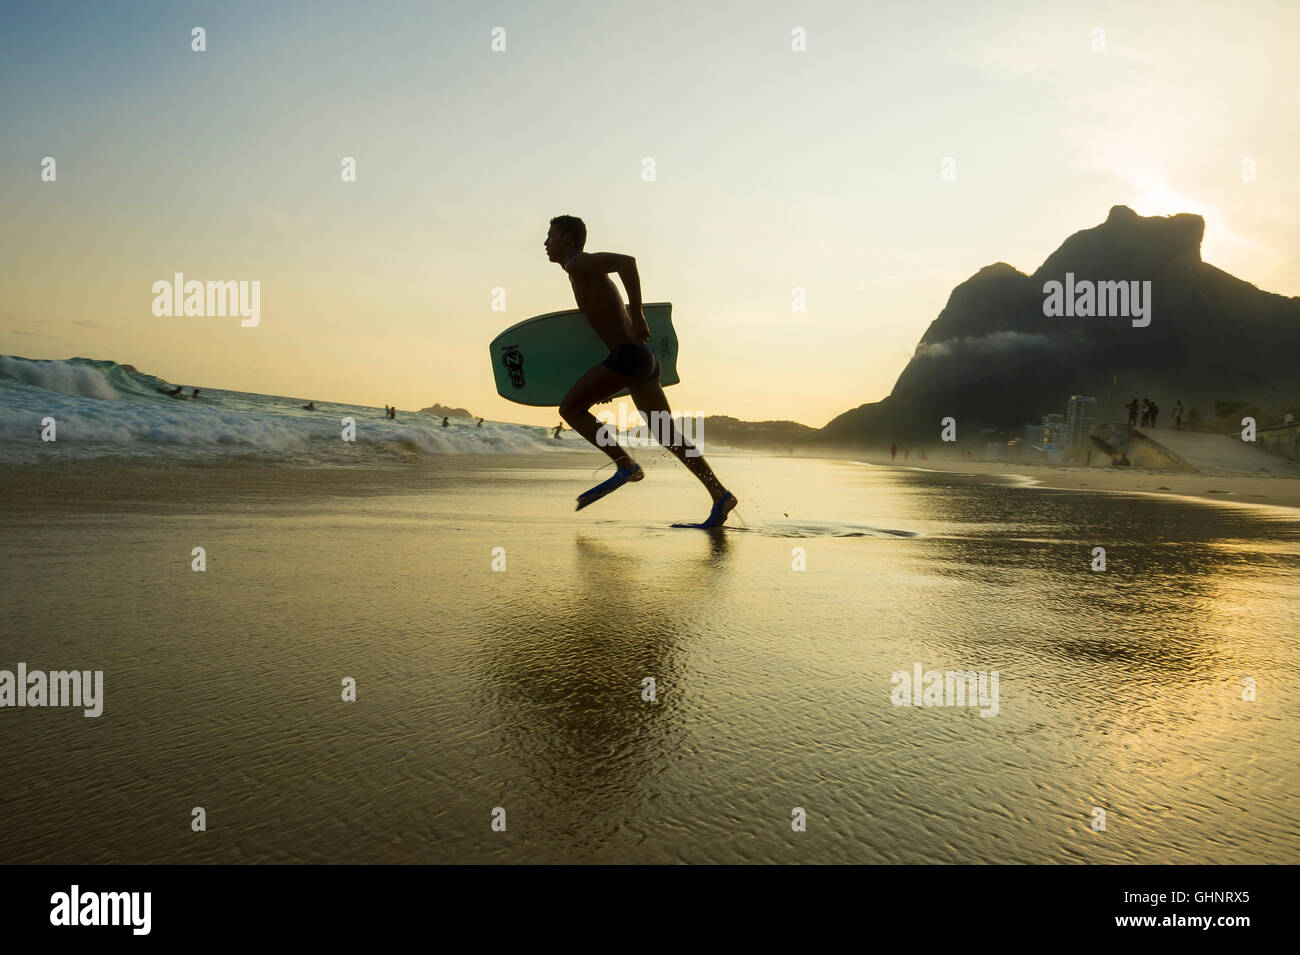 RIO DE JANEIRO - MARCH 8, 2016: Bodyboarder runs into the waves on São Conrado Beach under a sunset silhouette. - Stock Image